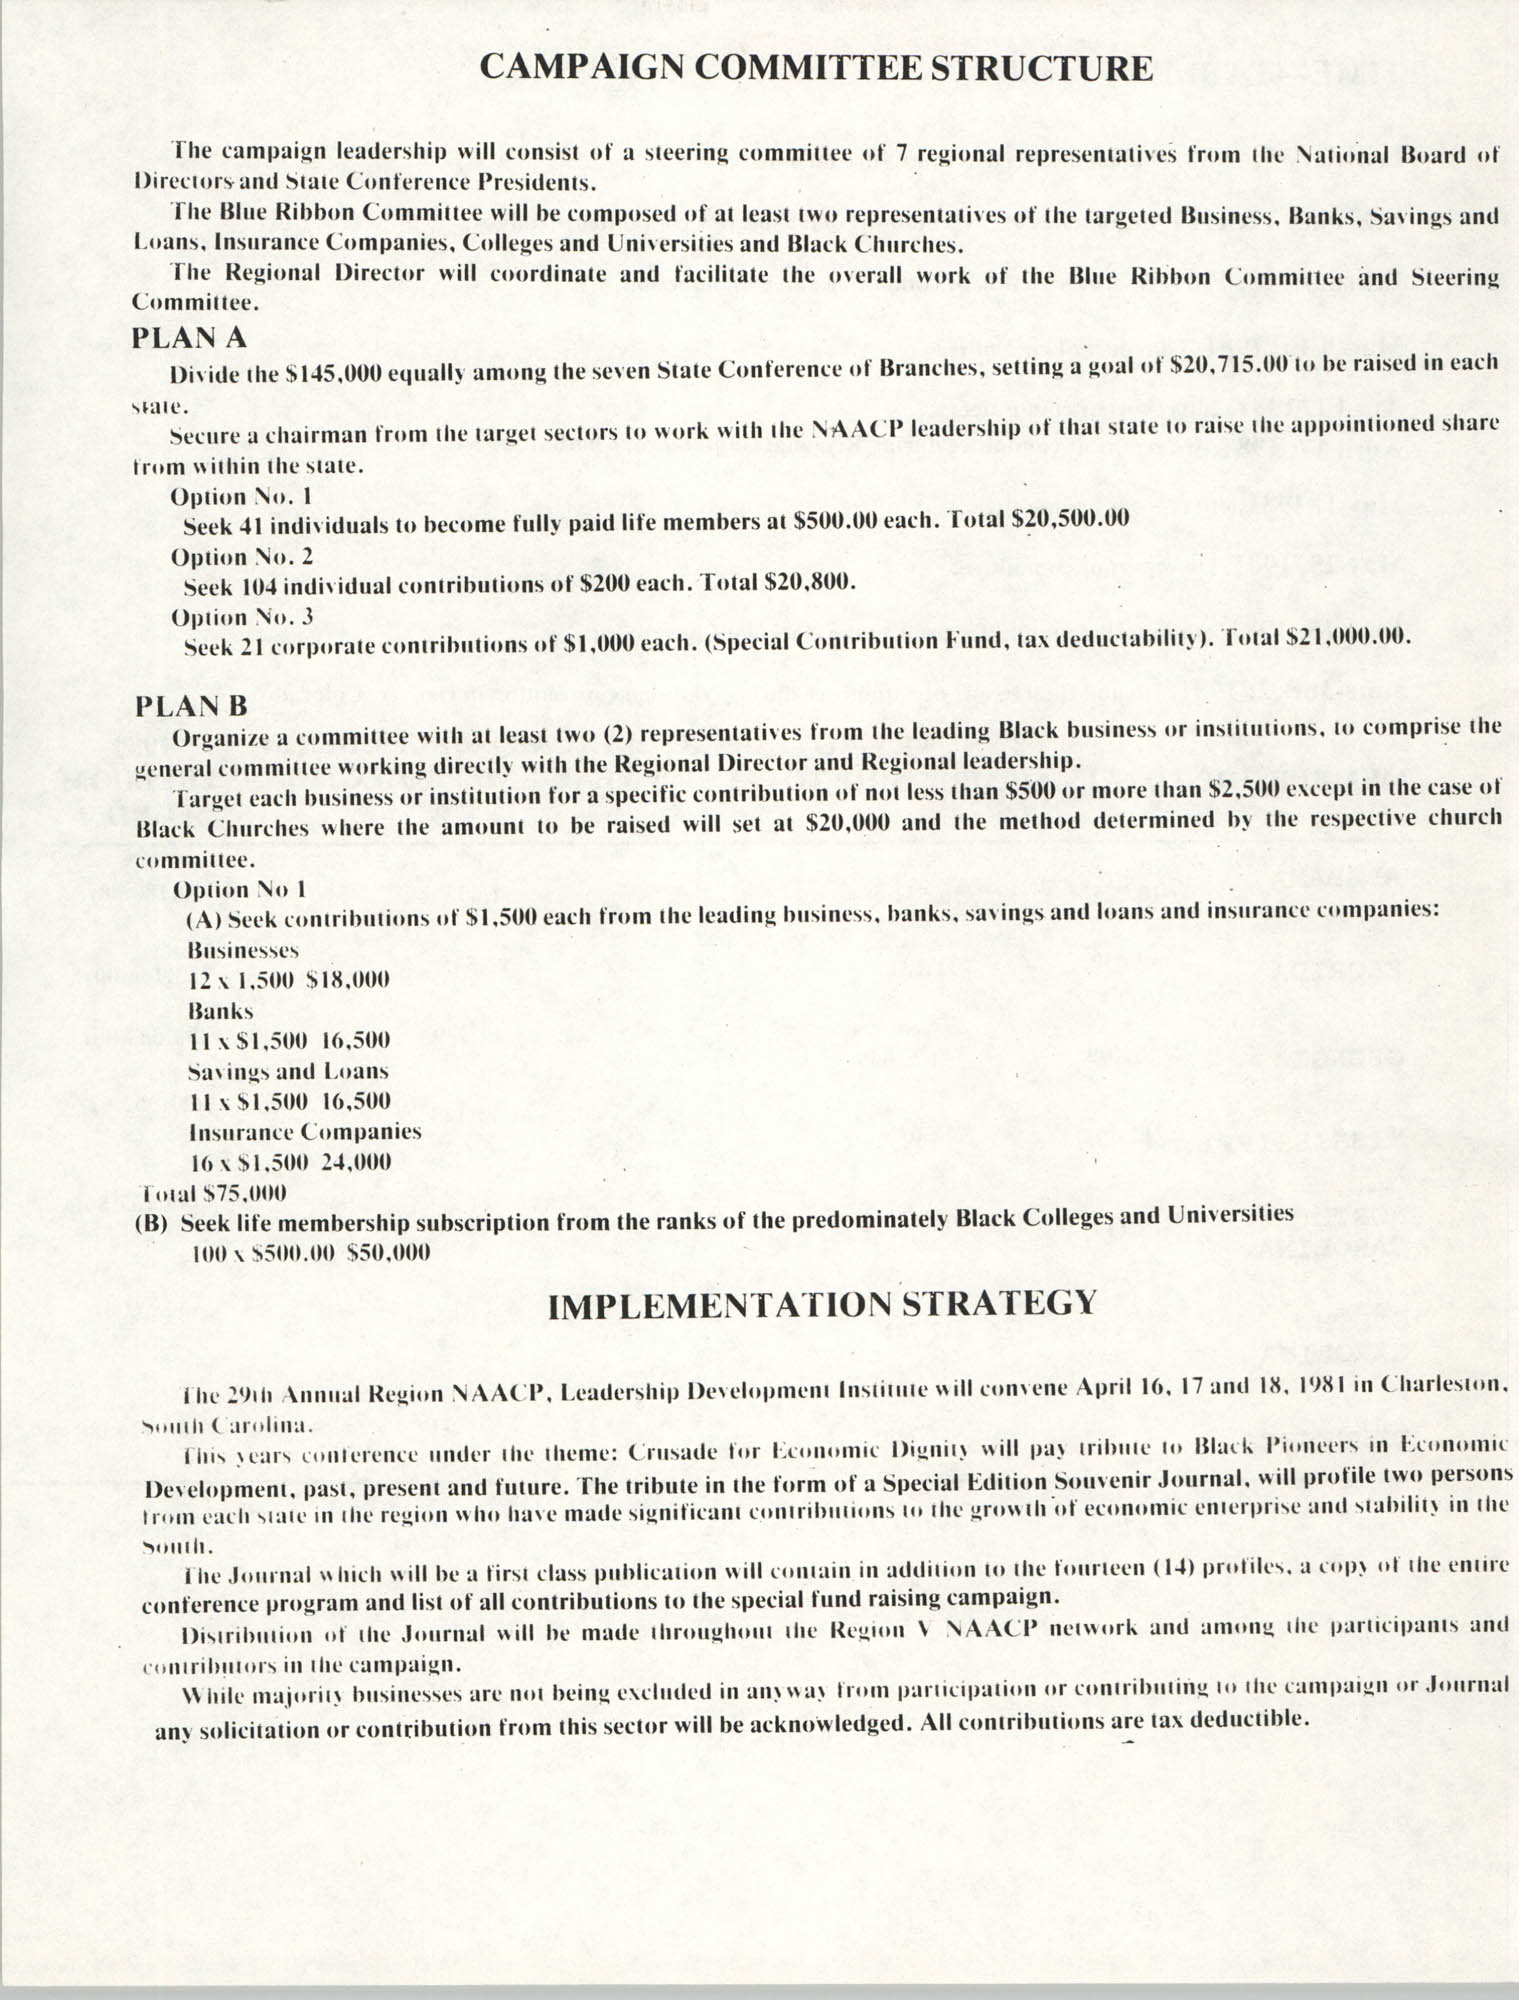 NAACP Region V, Crusade for Economic Dignity, Special Fund Raising Campaign, 1981, Page 4